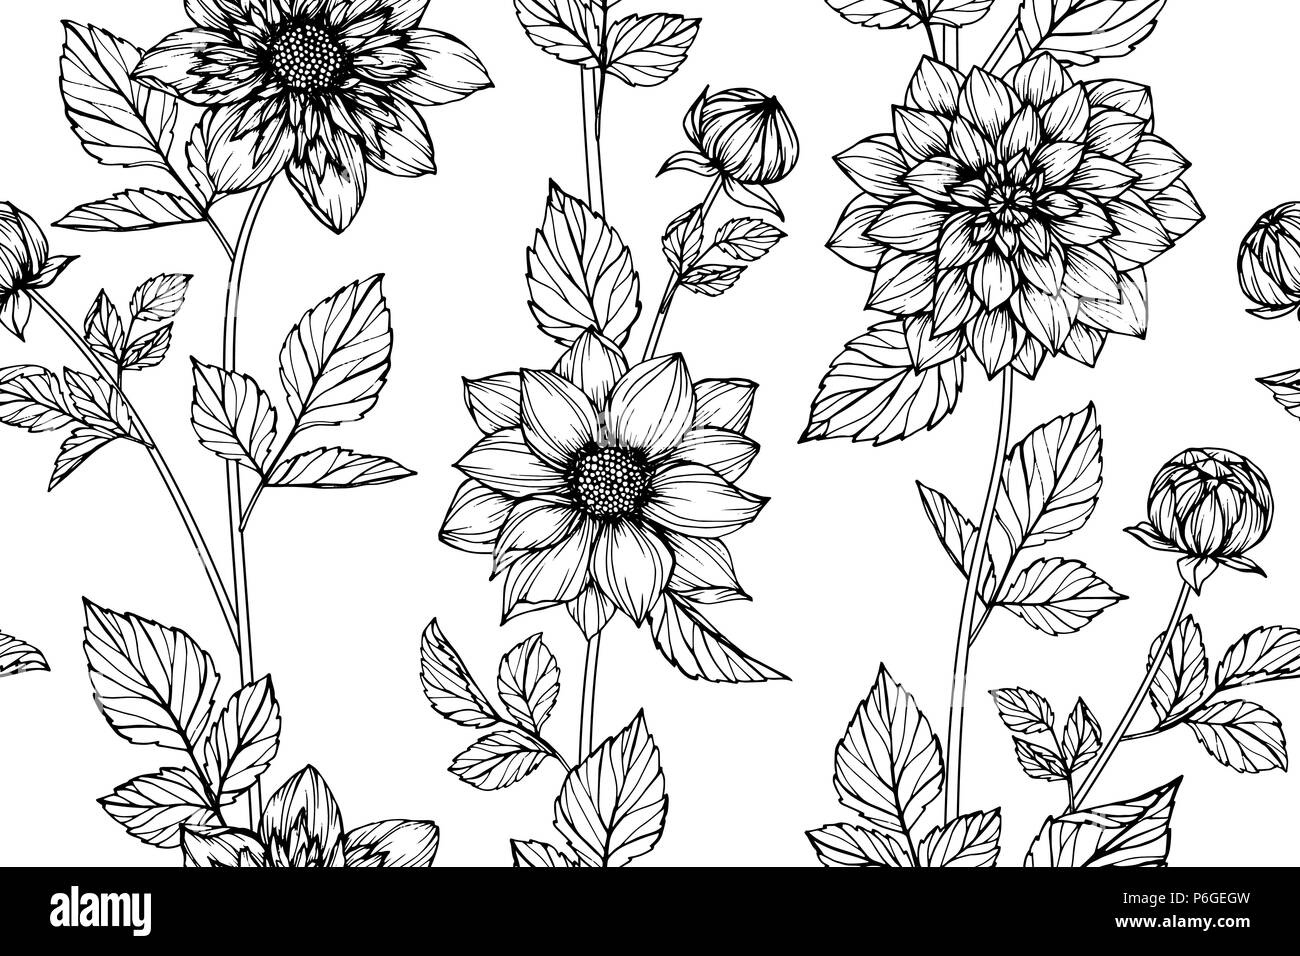 Seamless Dahlia Flower Pattern Background Black And White With